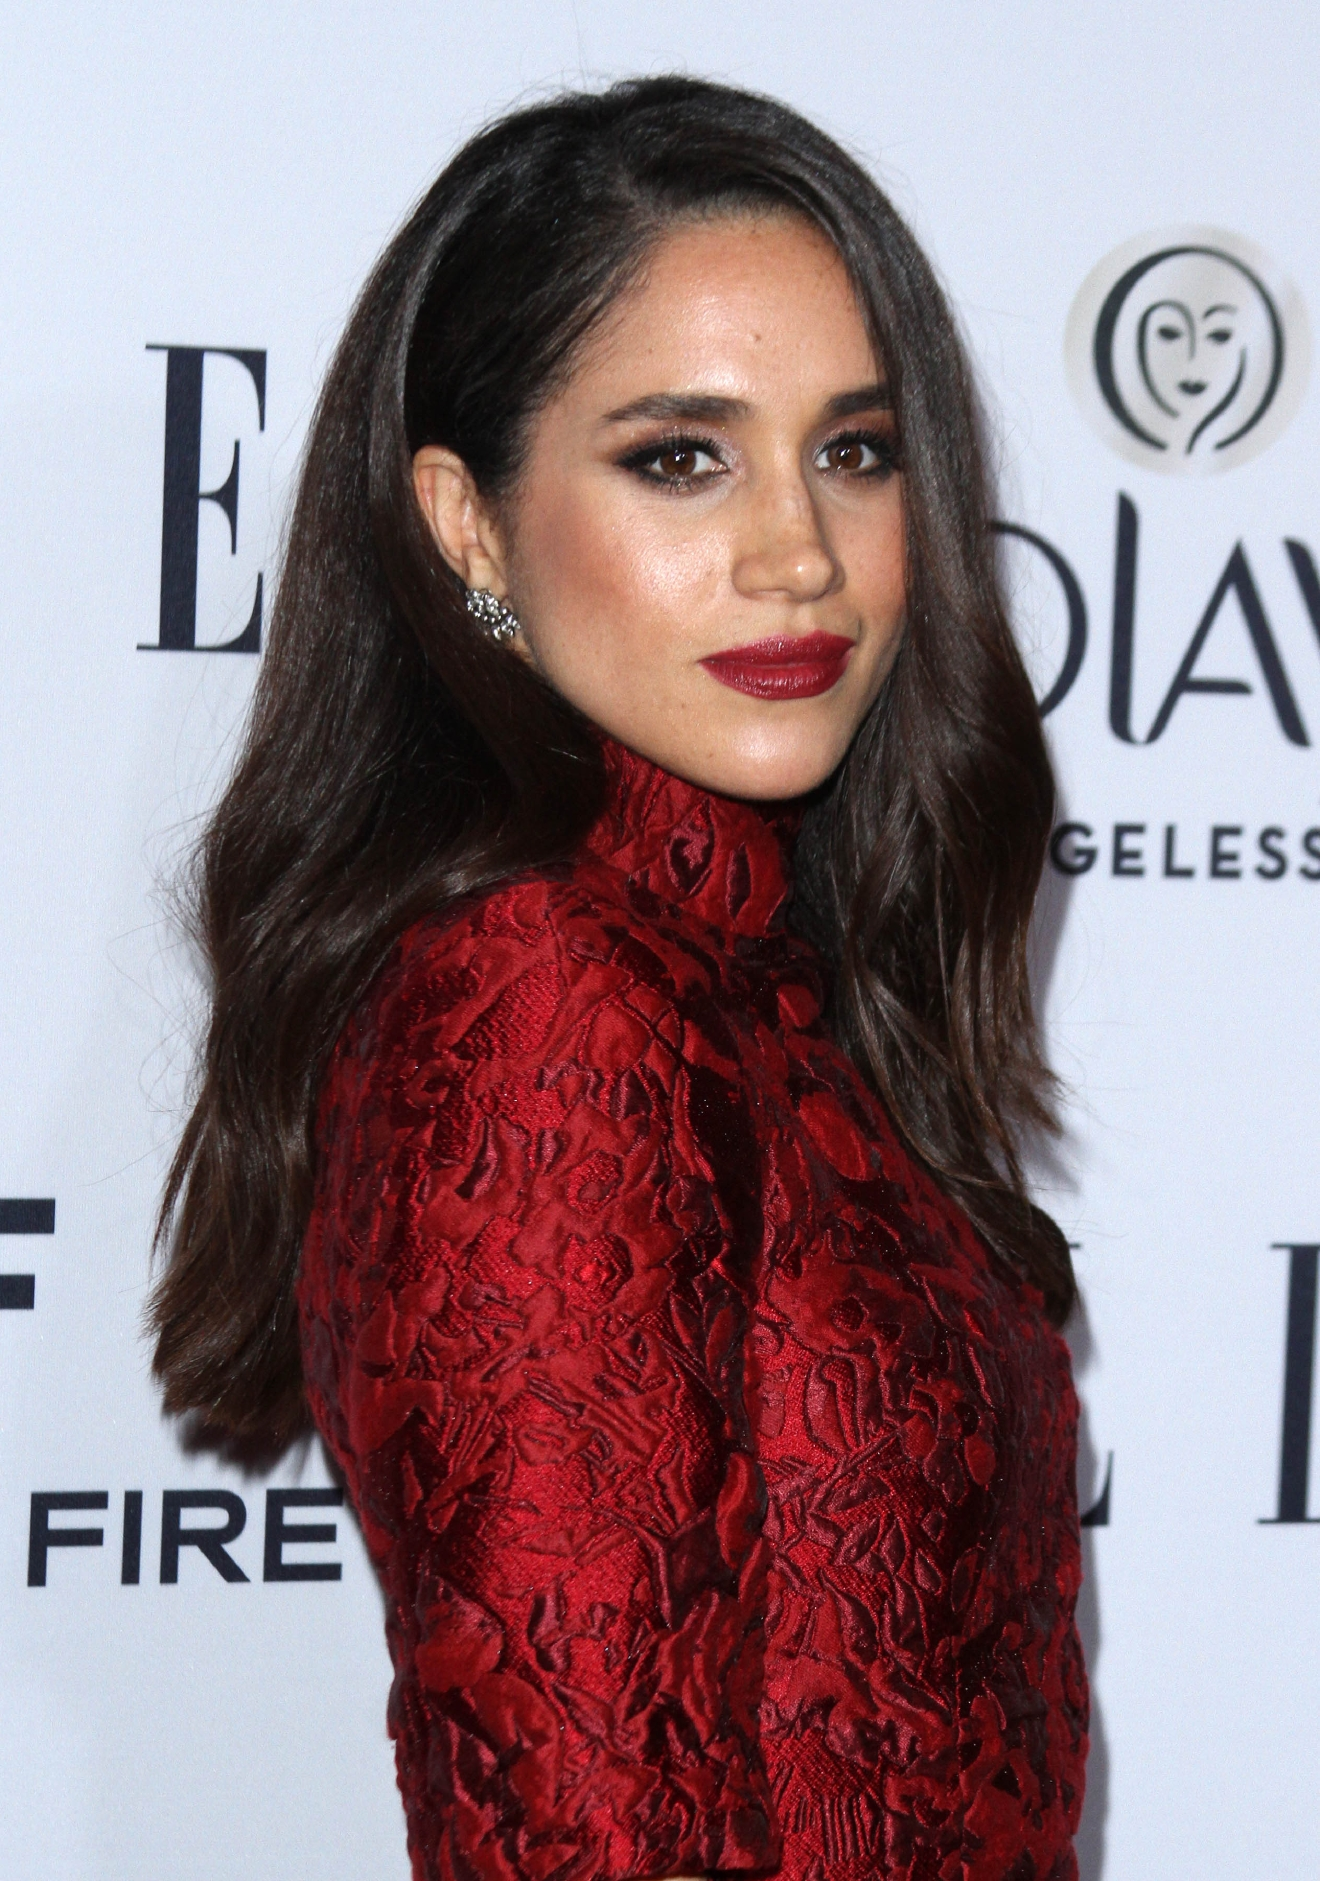 ELLE's Women In Television Celebration presented by Hearts on Fire Diamonds and Olay held at the Sunset Tower Hotel  Featuring: Meghan Markle Where: Los Angeles, California, United States When: 20 Jan 2016 Credit: Adriana M. Barraza/WENN.com